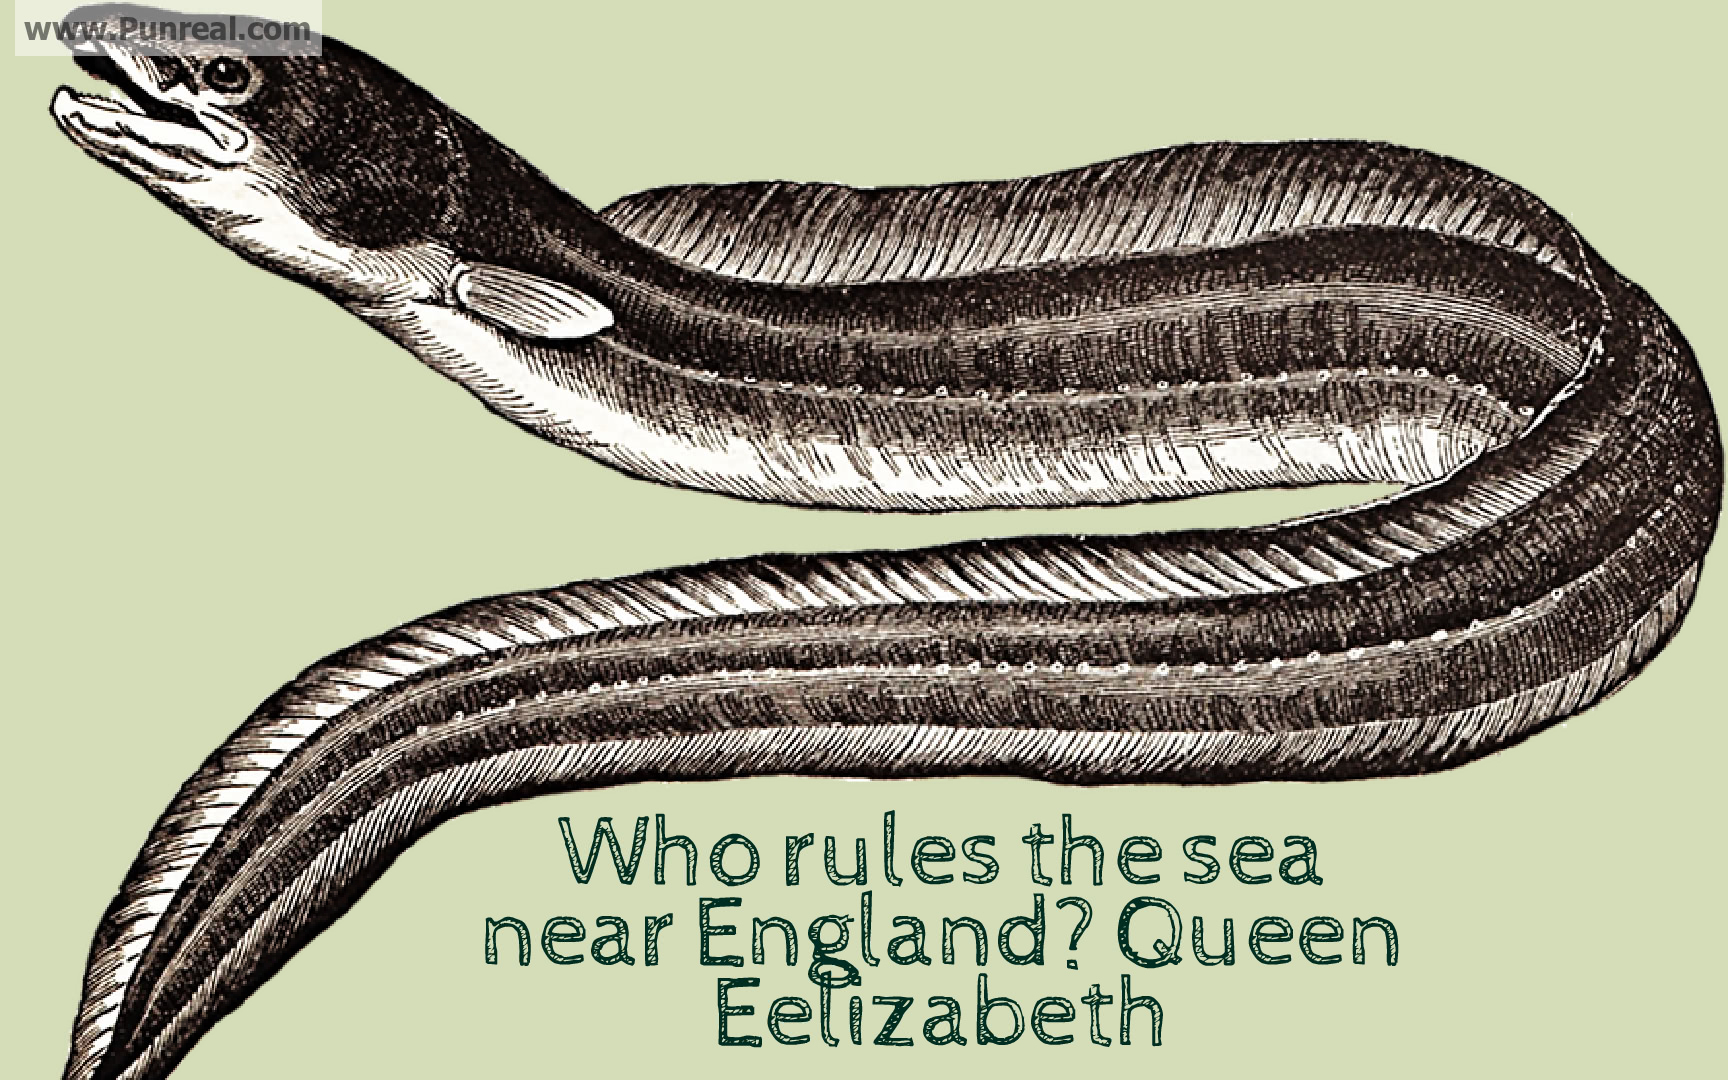 Who rules the sea near England? Queen Eelizabeth